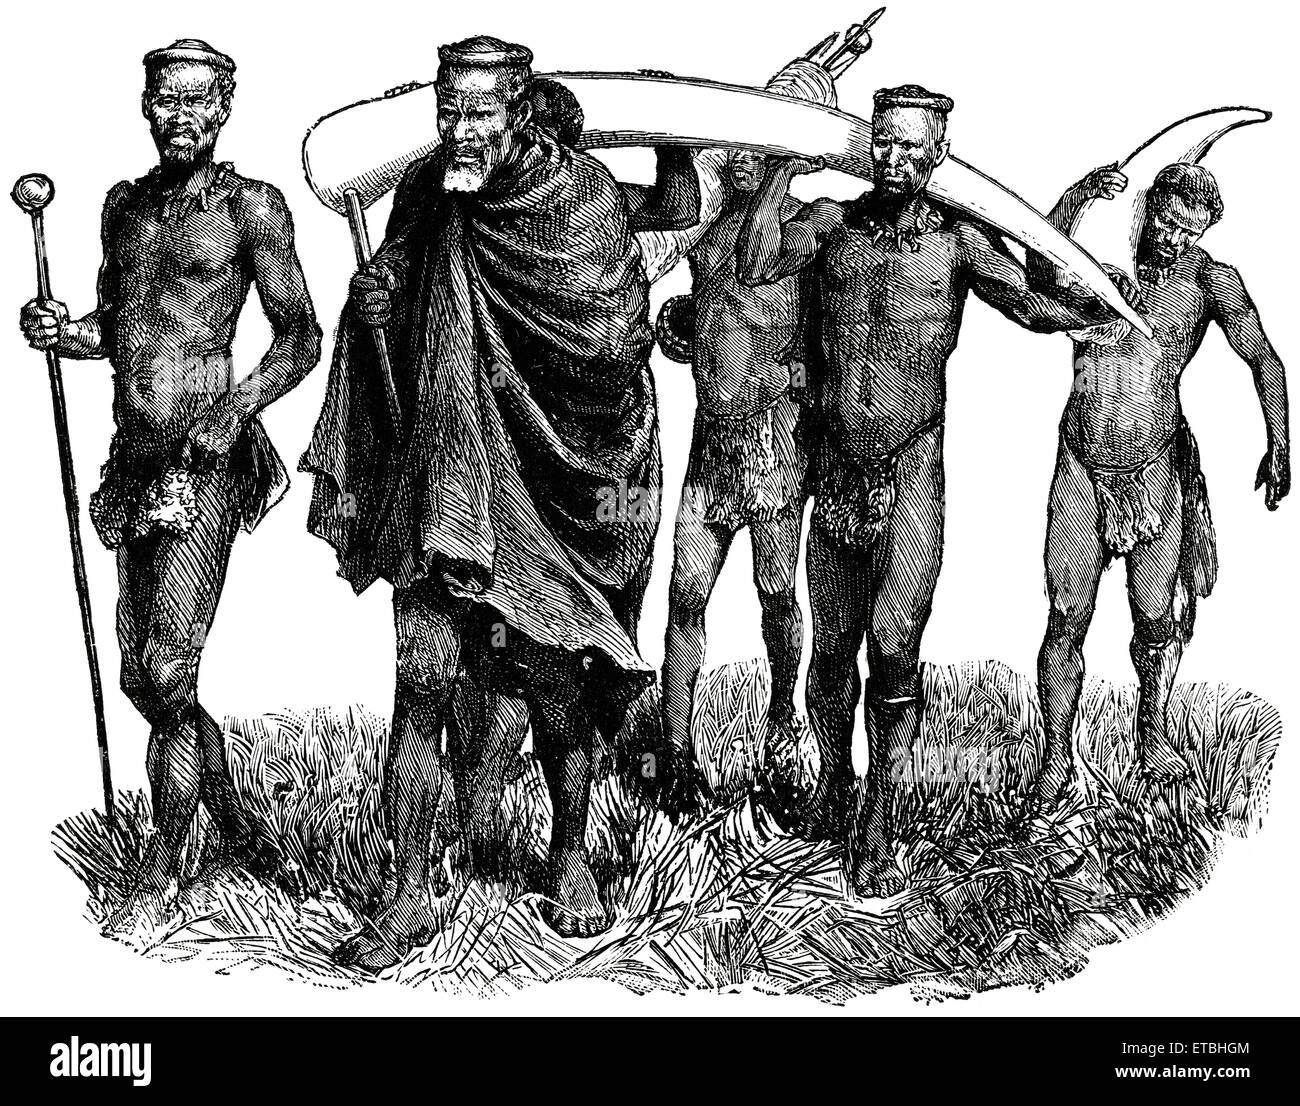 Group of Men Carrying Large Elephant Tusks, Africa, 'Classical Portfolio of Primitive Carriers', by Marshall - Stock Image